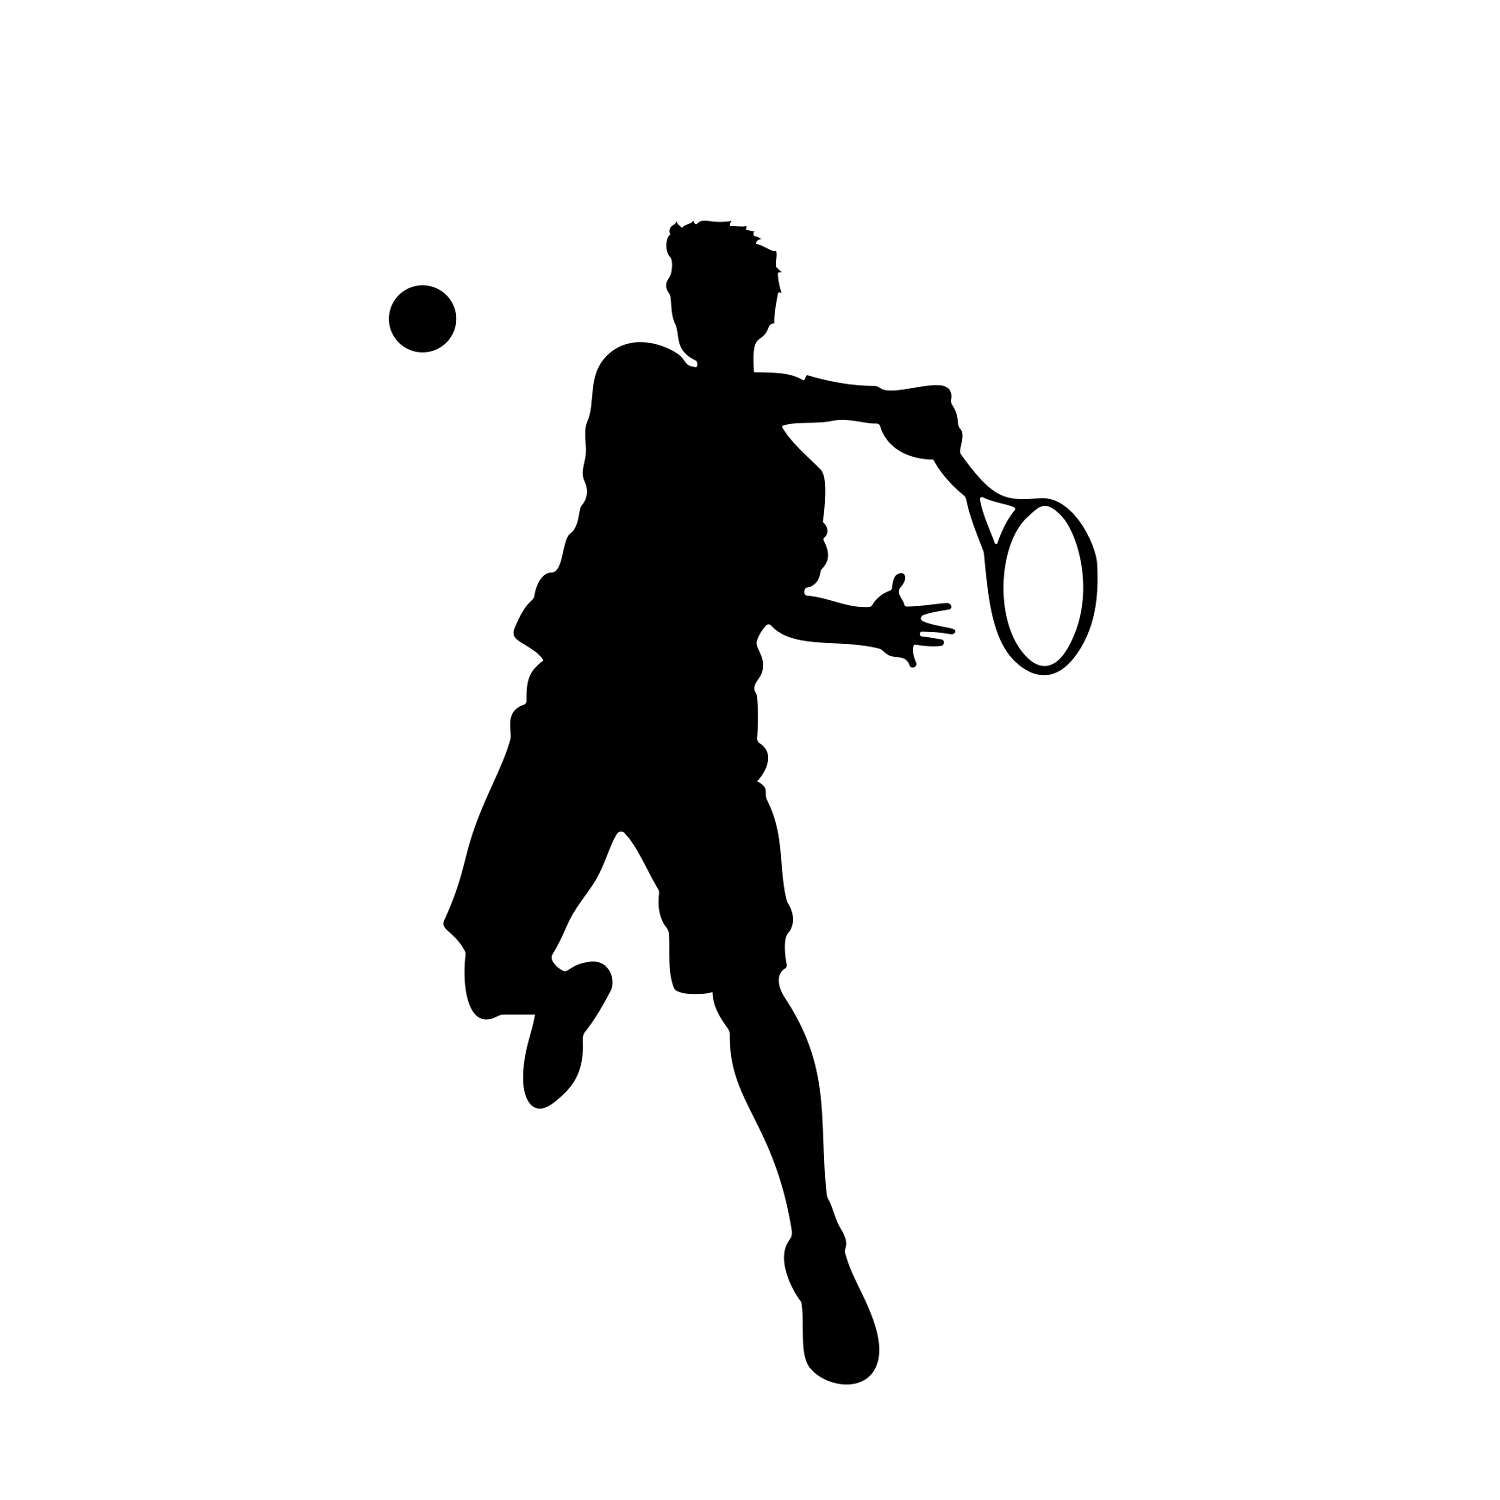 Tennis player graphics